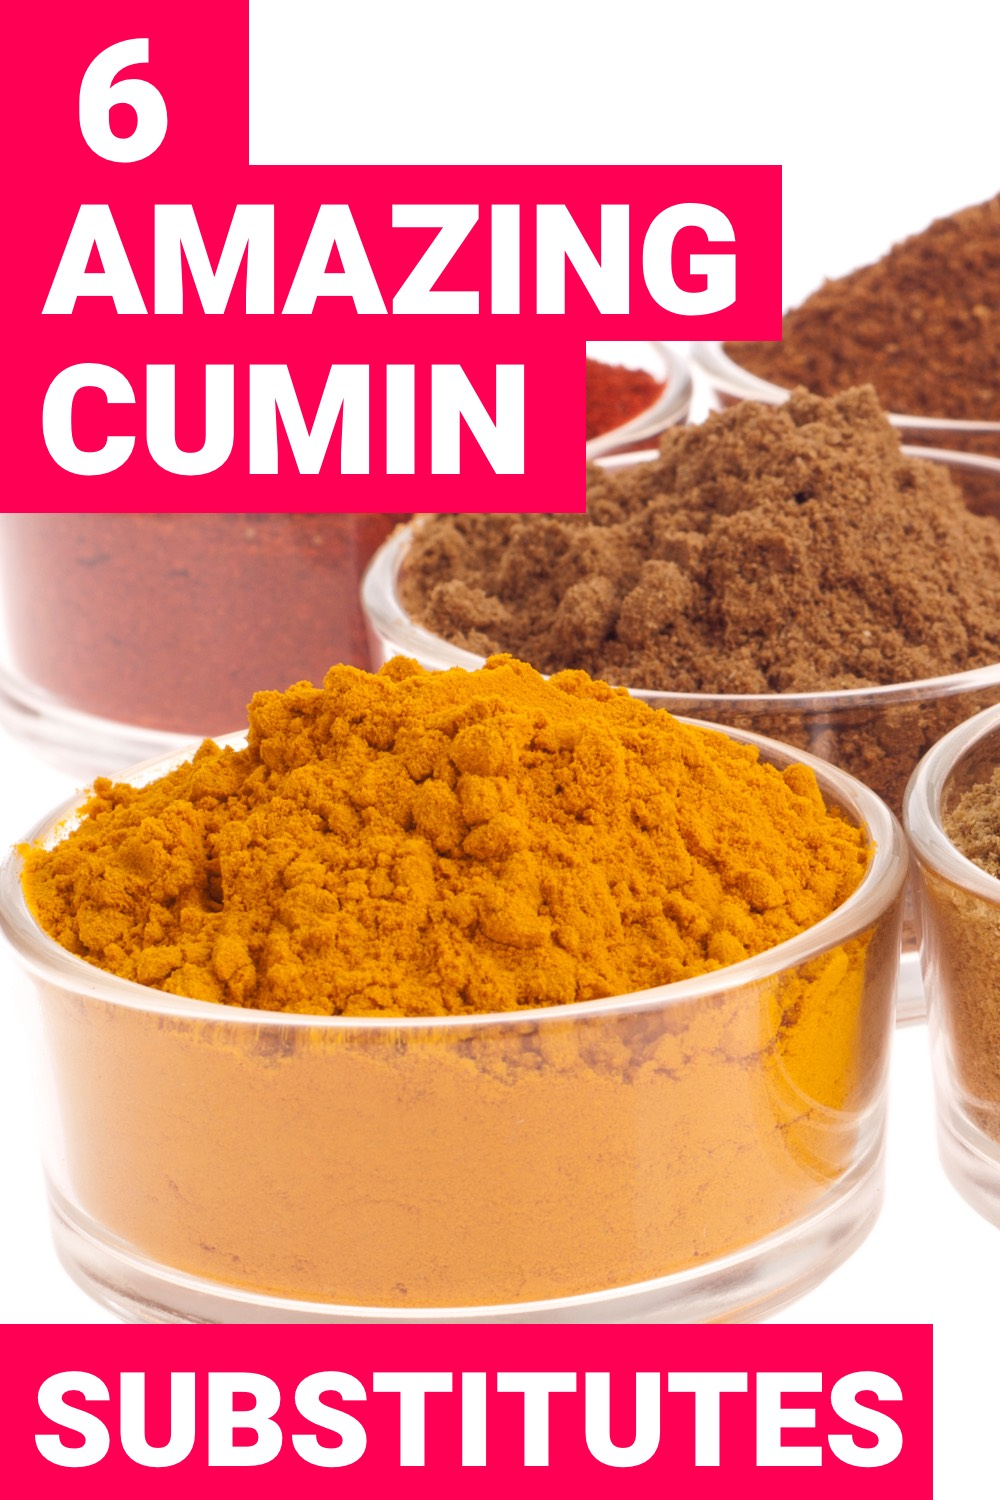 For one reason or another you may need a cumin substitute. Well, here are 6 cumin substitutes for when you need them.